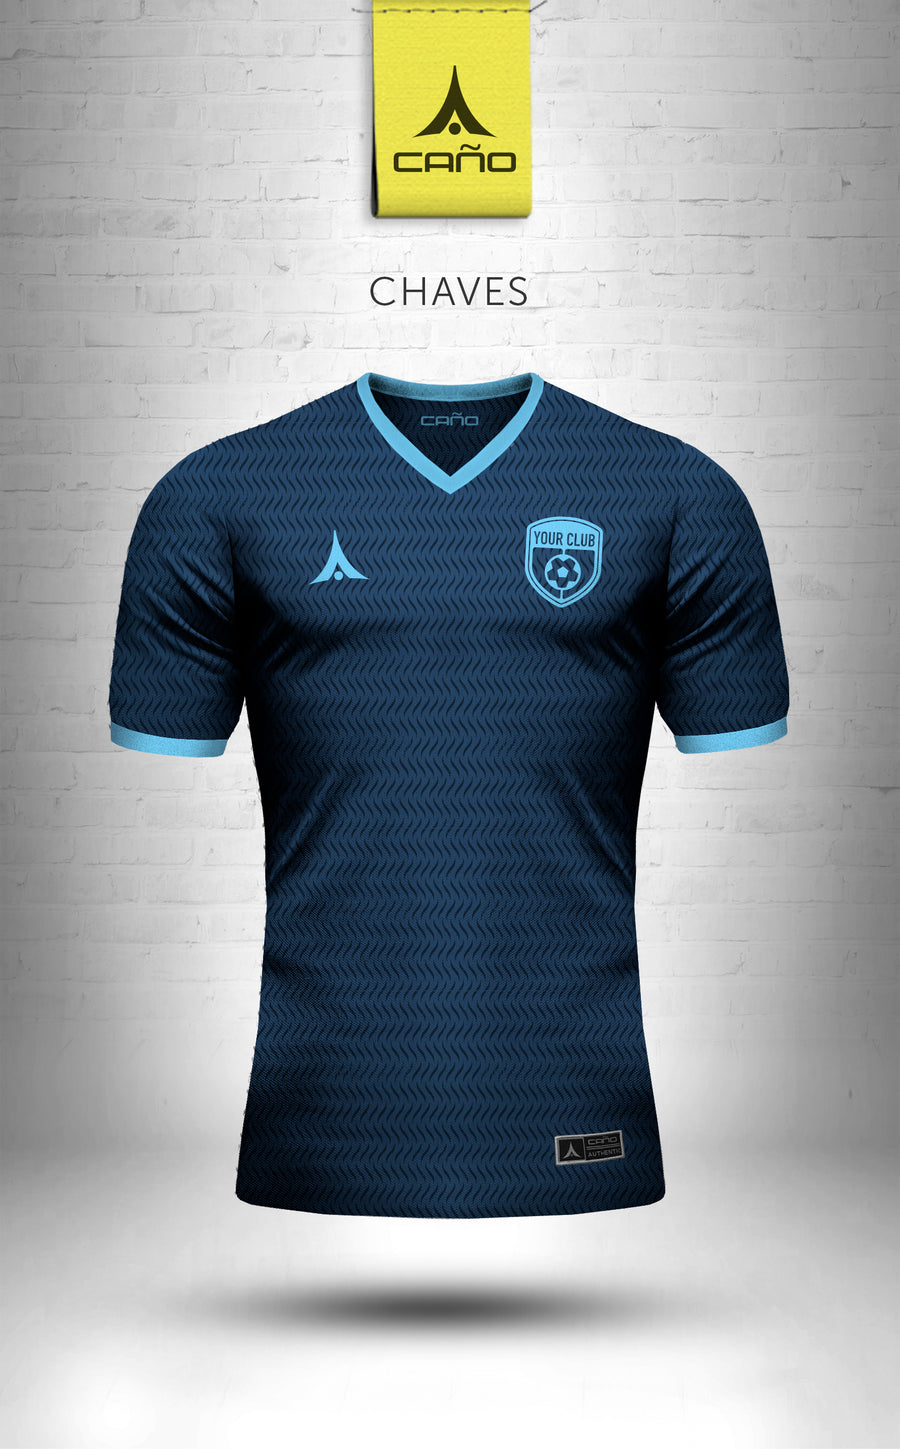 Chaves in navy/light blue